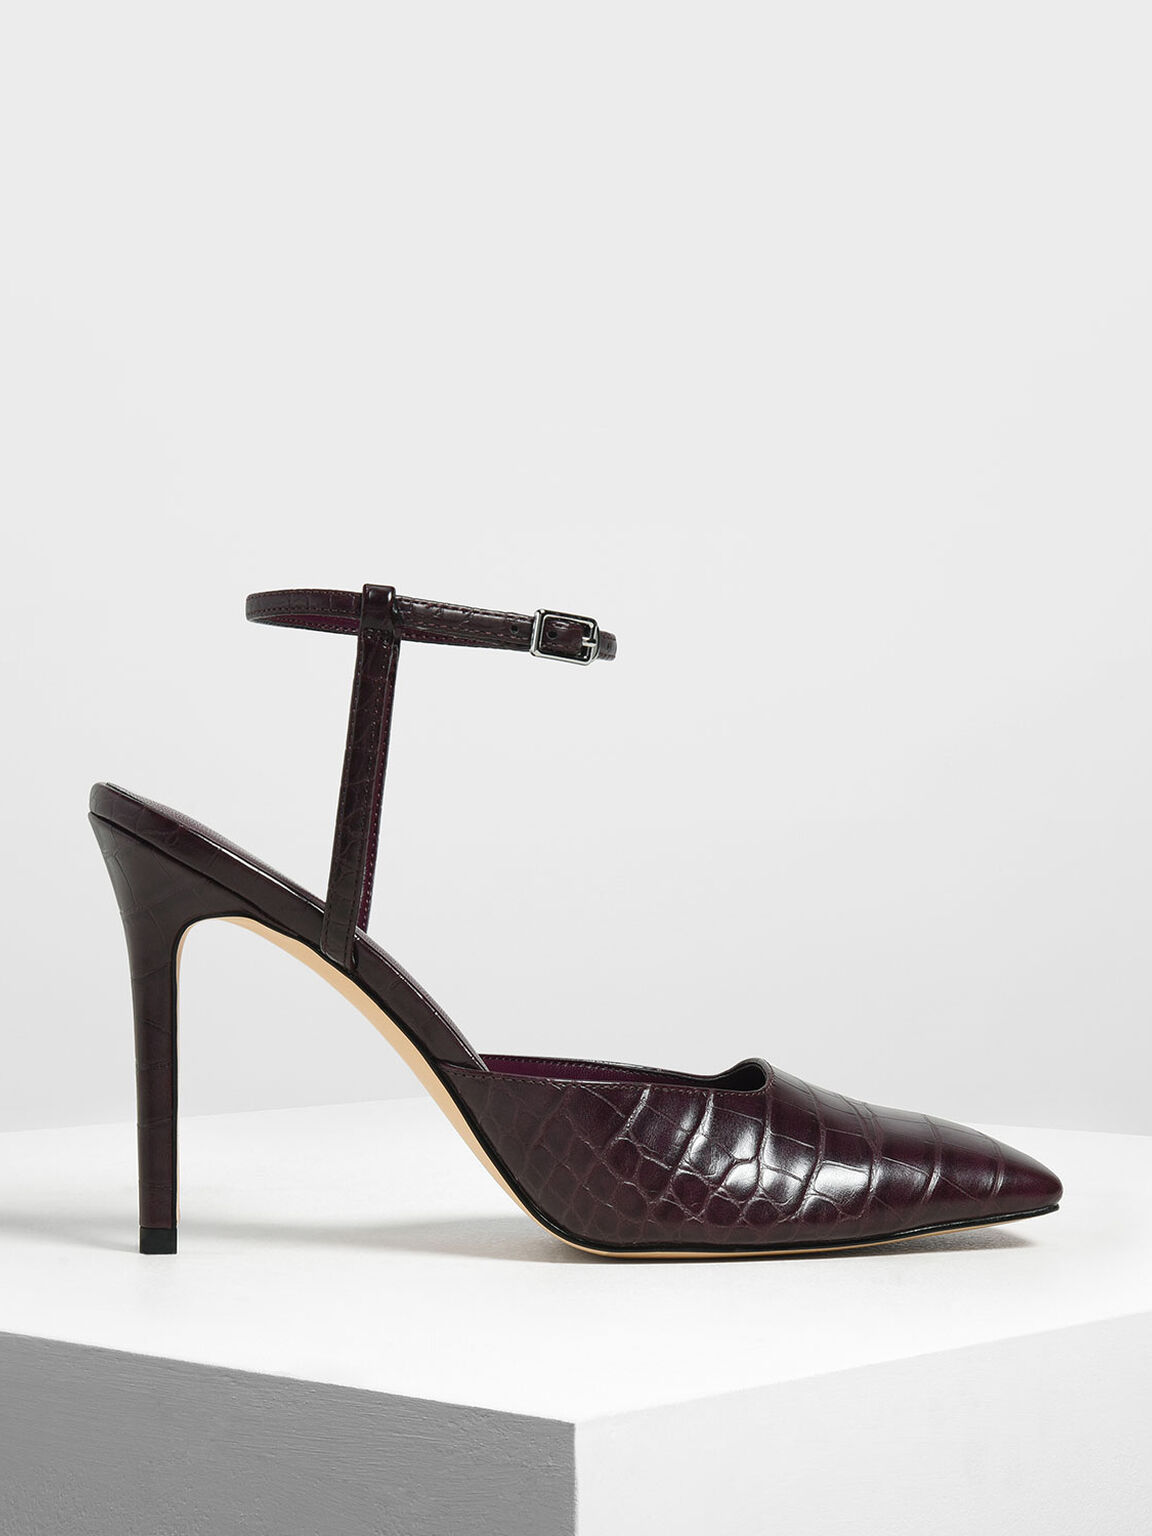 Square Toe Croc-Effect Stiletto Pumps, Prune, hi-res